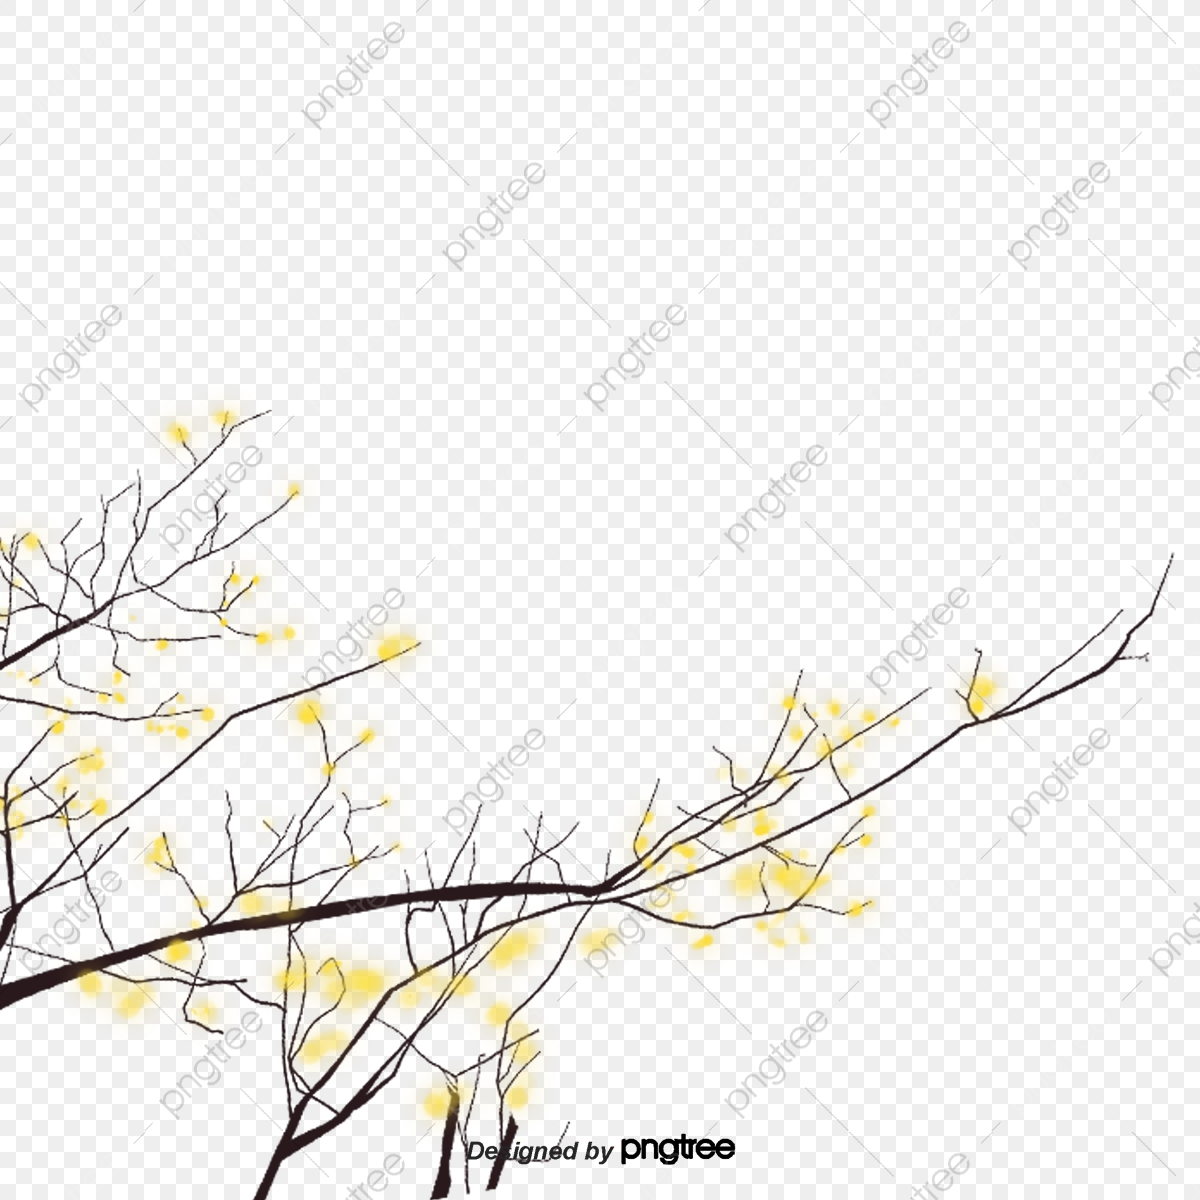 Small Yellow Flowers With Branches Element Big Tree Branch Png